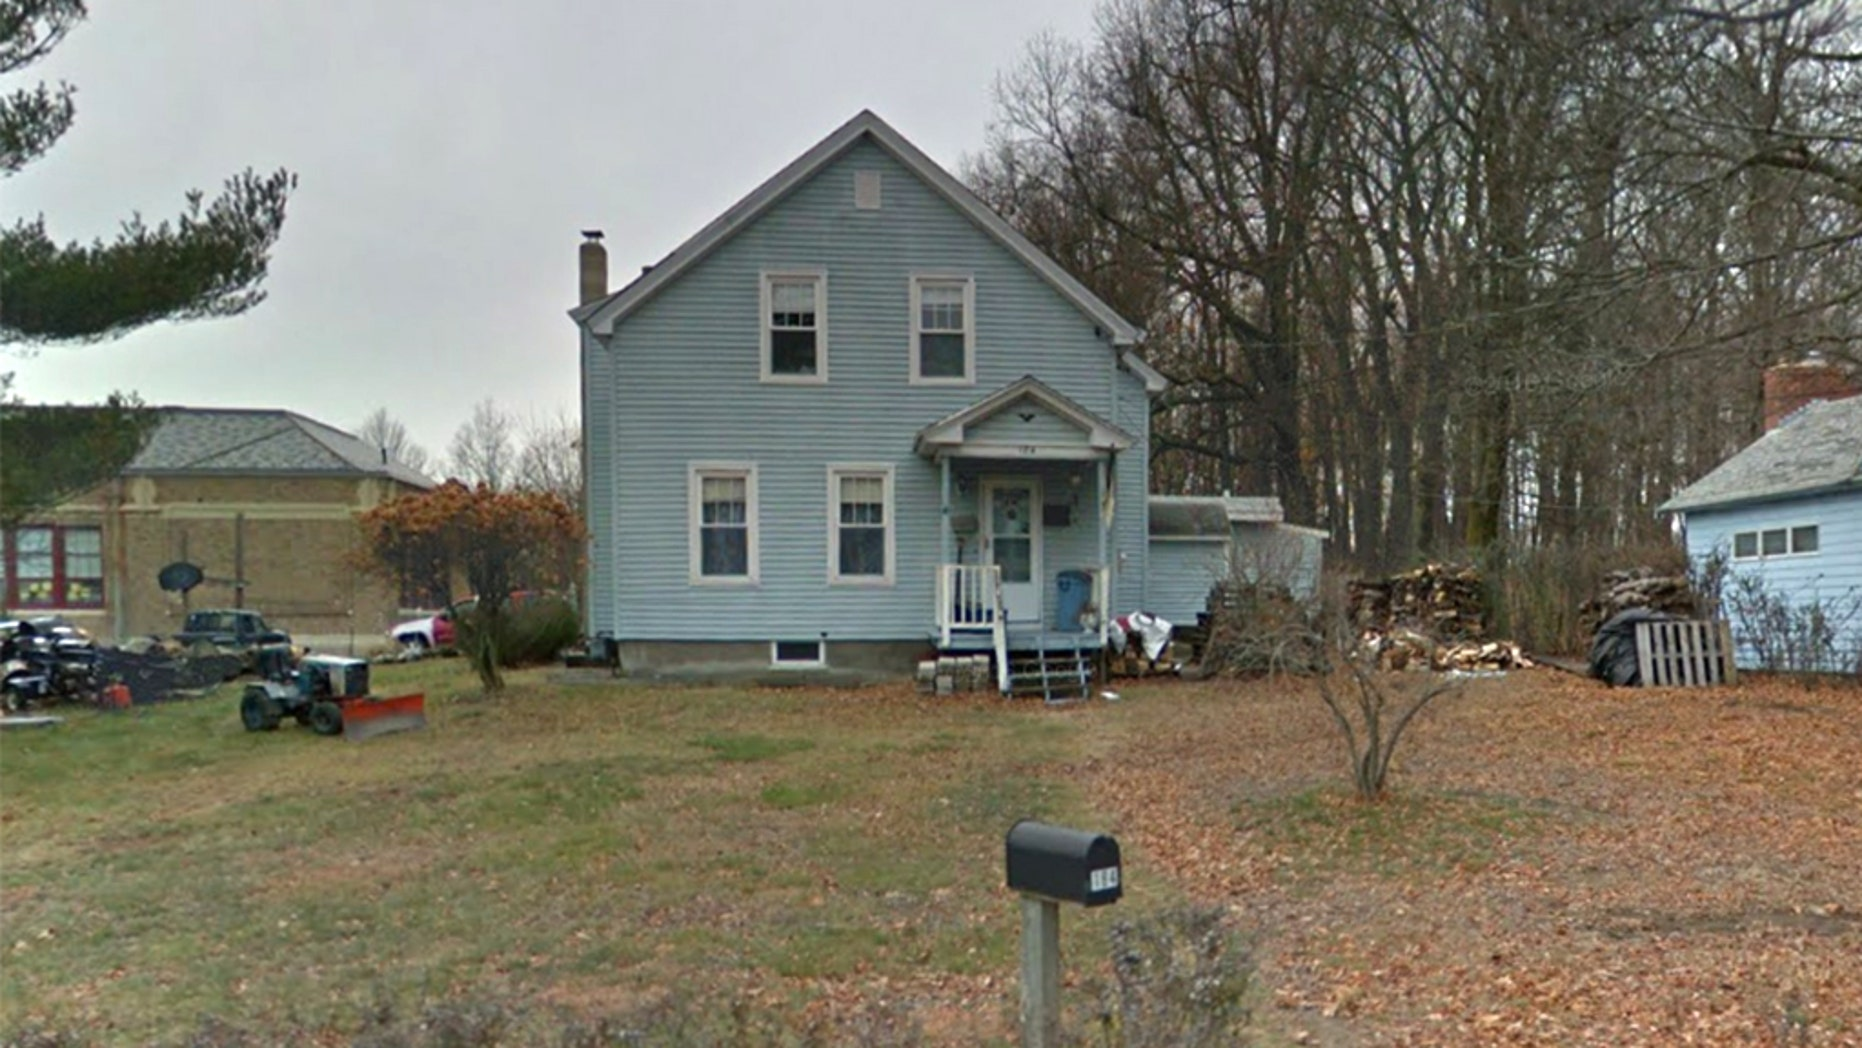 A woman died after falling into a fire pit at this home in Worcester, Massachusetts, fire officials said.